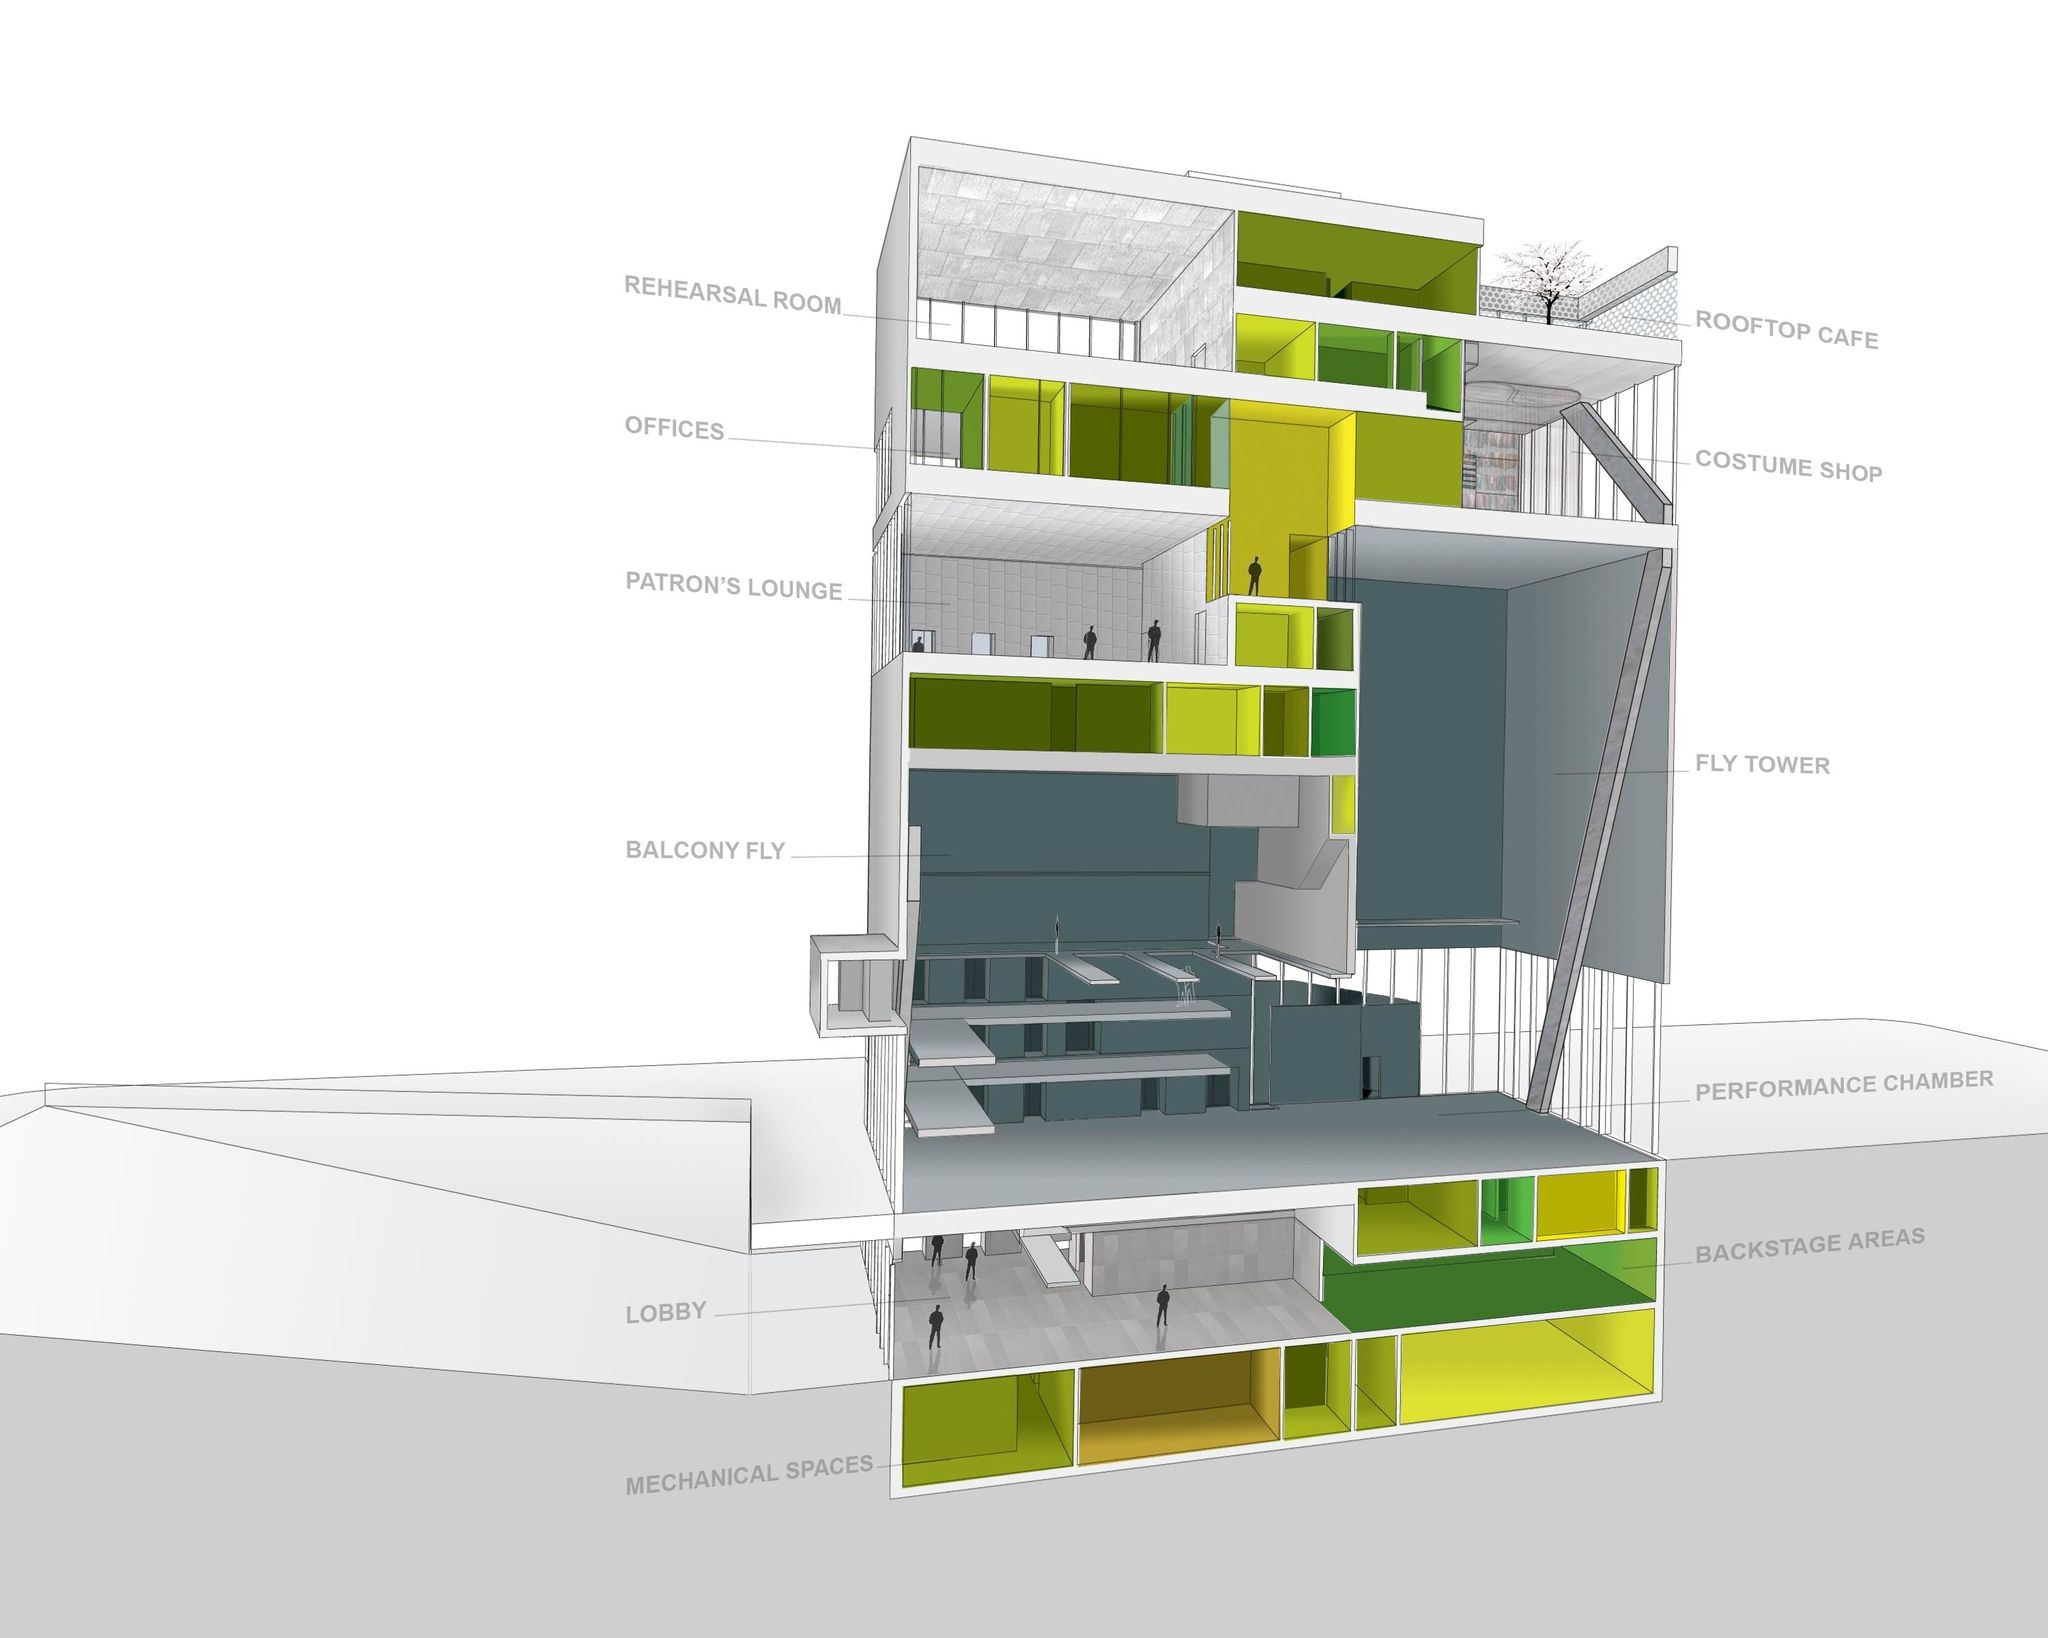 Front Of House Theatre Design Part - 34: In The Typical Theater, The Proliferation Of Front-of-house And Back-